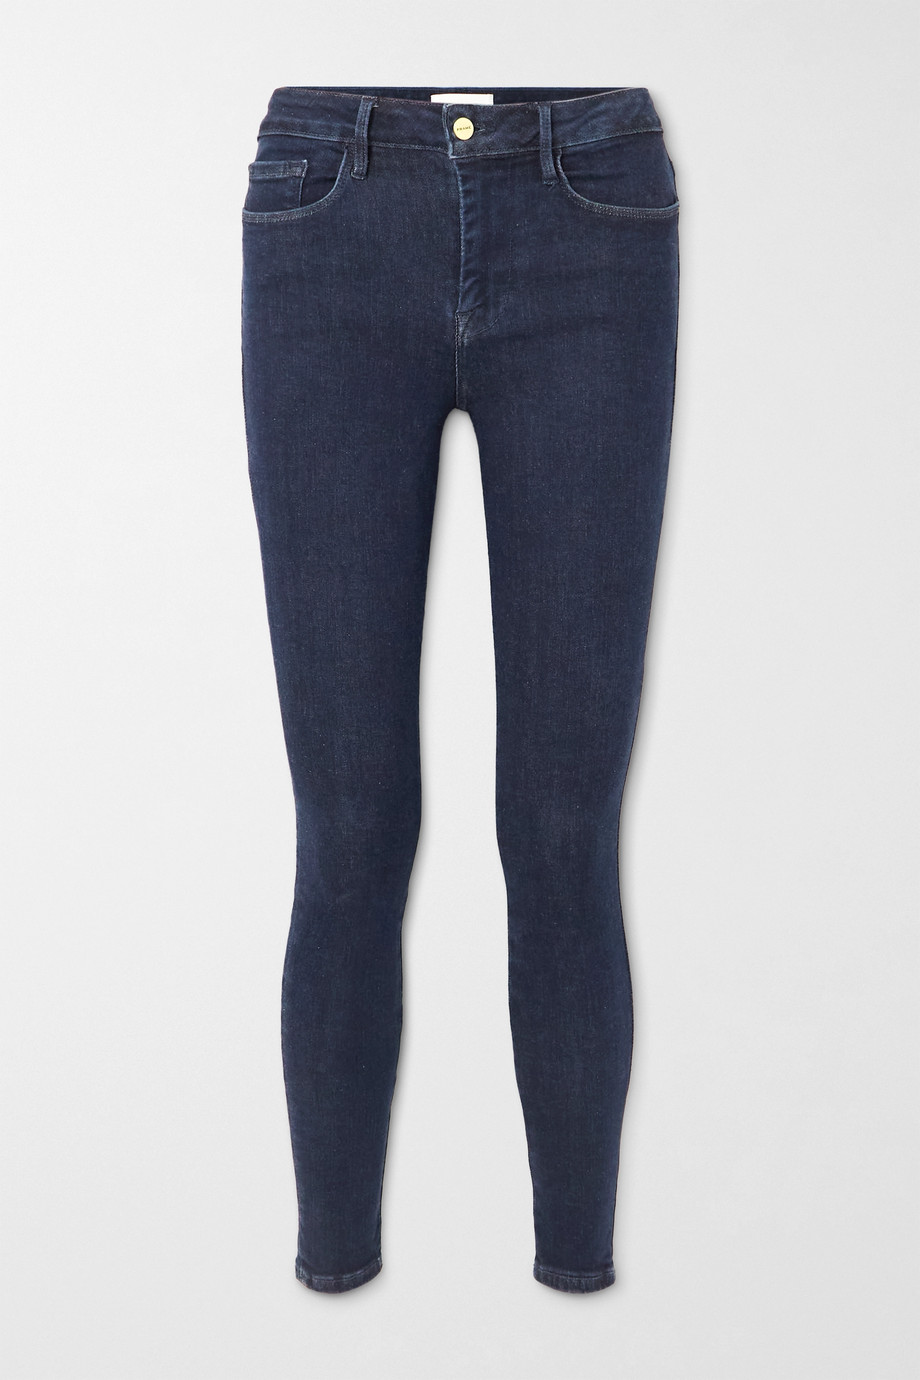 FRAME Le One high-rise skinny jeans